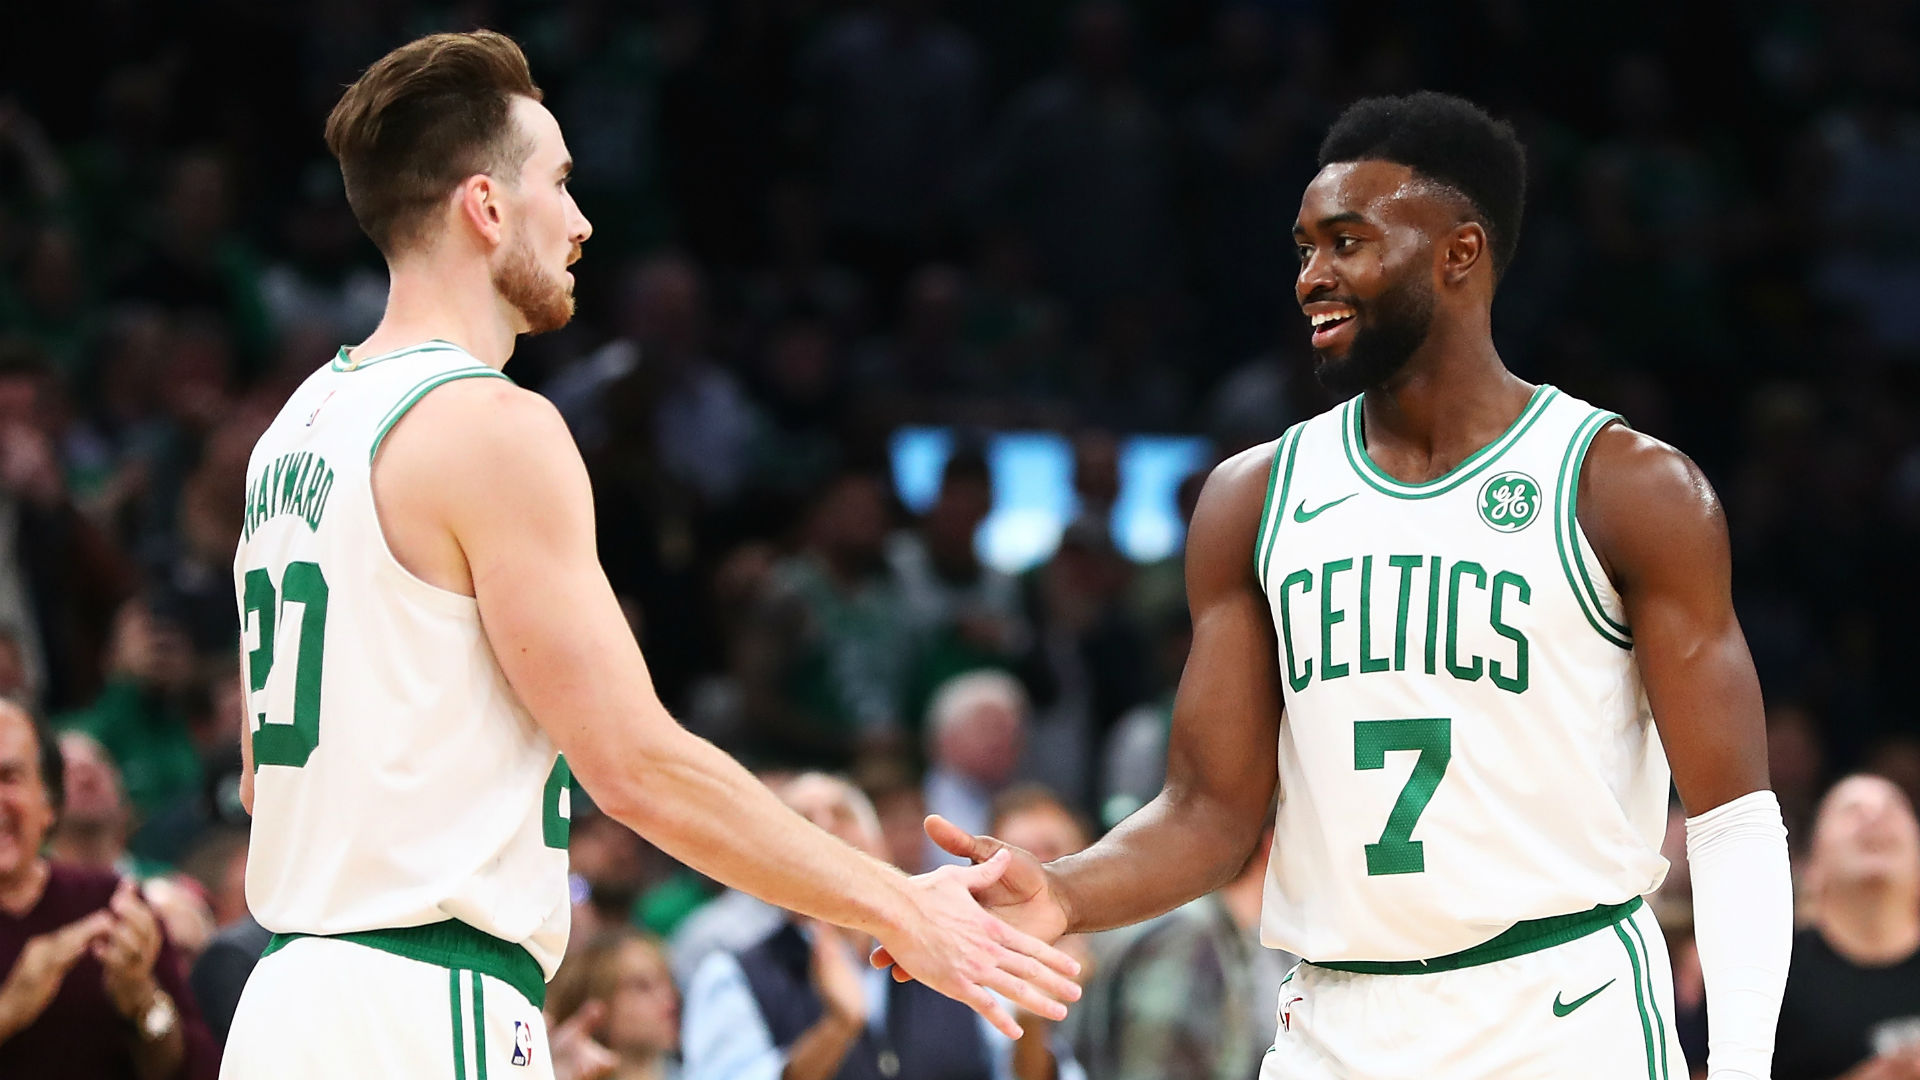 gordon-hayward-jaylen-brown-101618-ftr.jpg